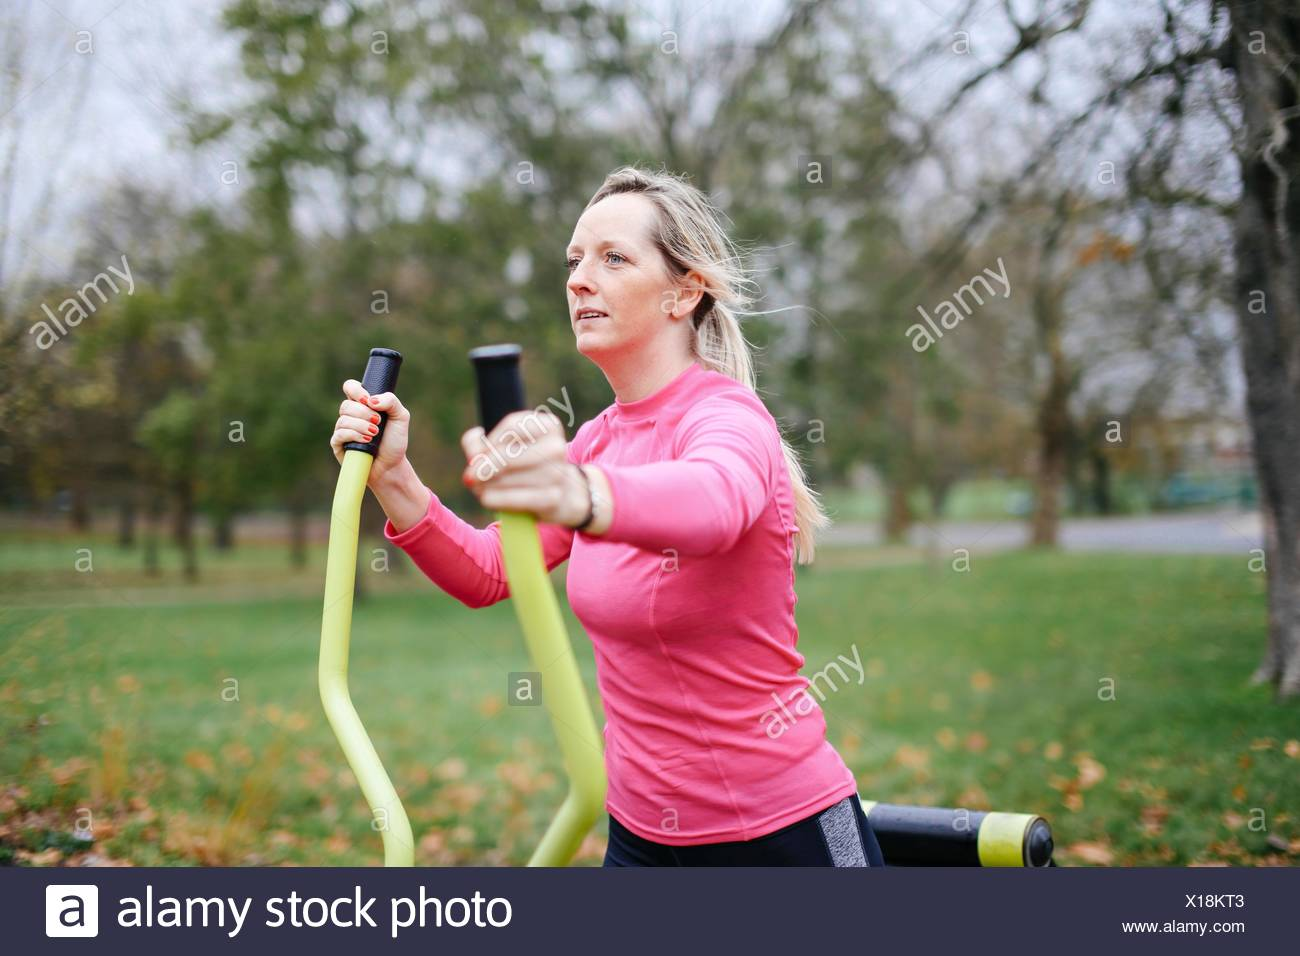 Young woman training on exercise machine in park - Stock Image